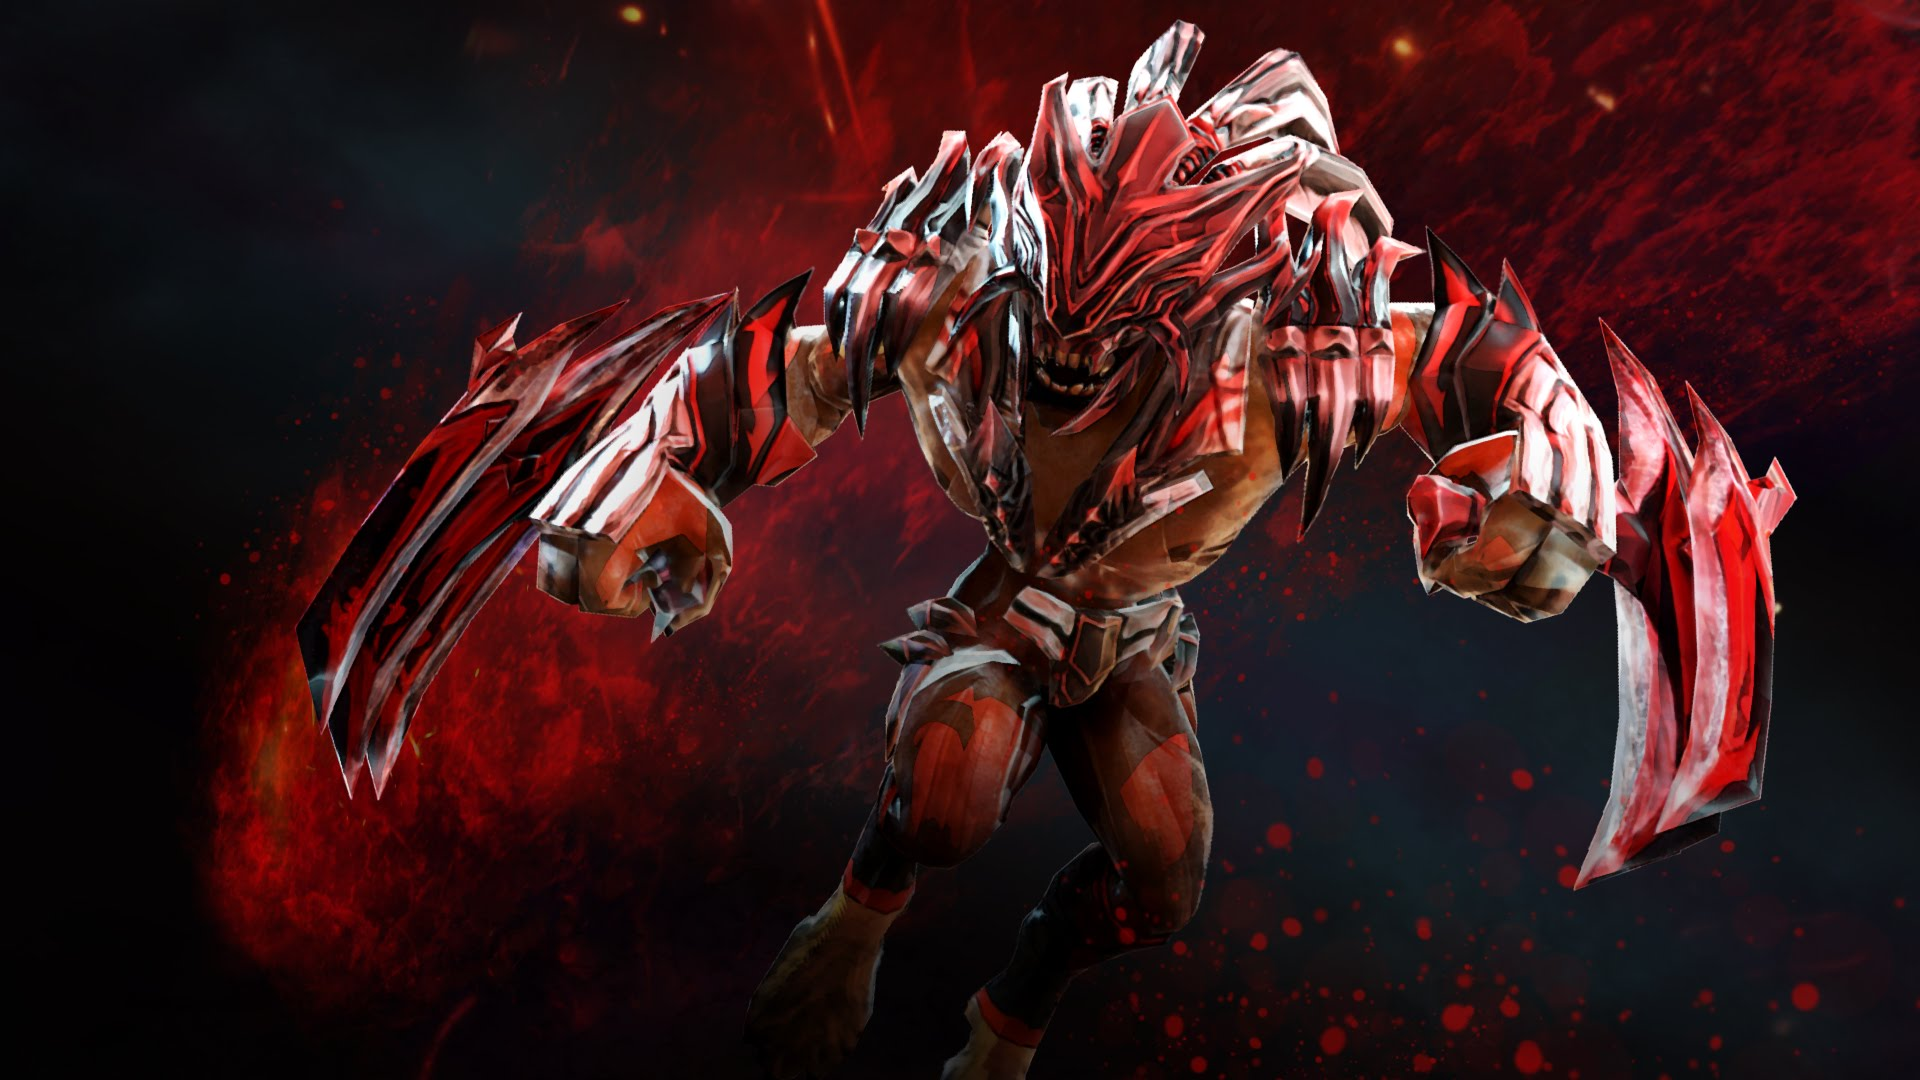 Dota2 : Bloodseeker HQ wallpapers